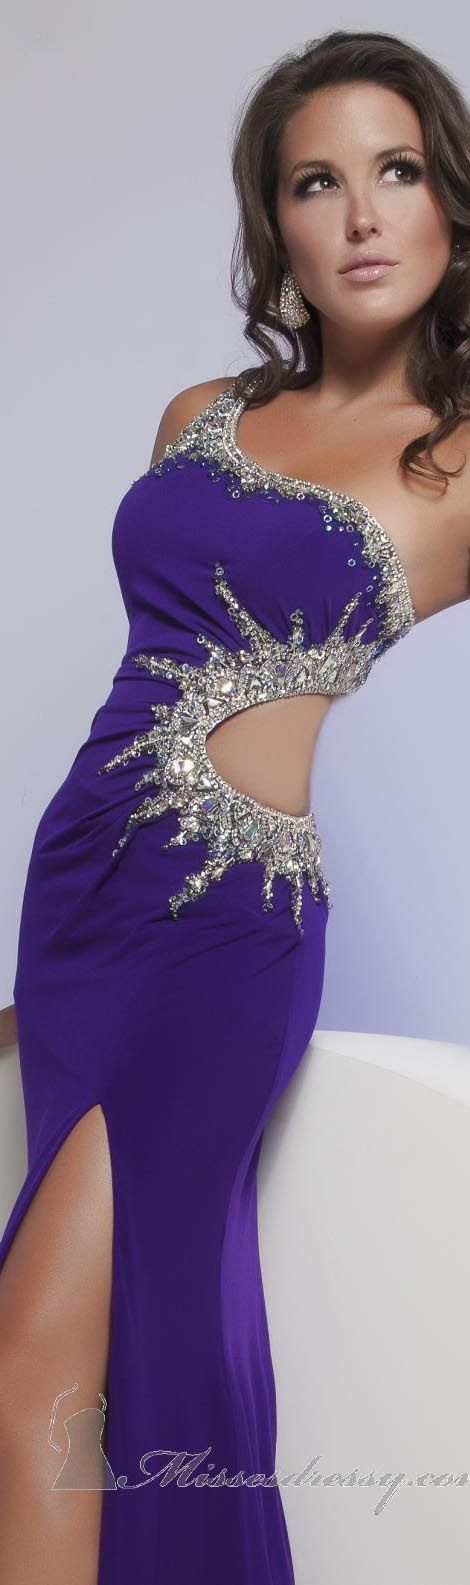 One Shoulder Gown by Jasz Couture #sexy #oneshoulder #dress